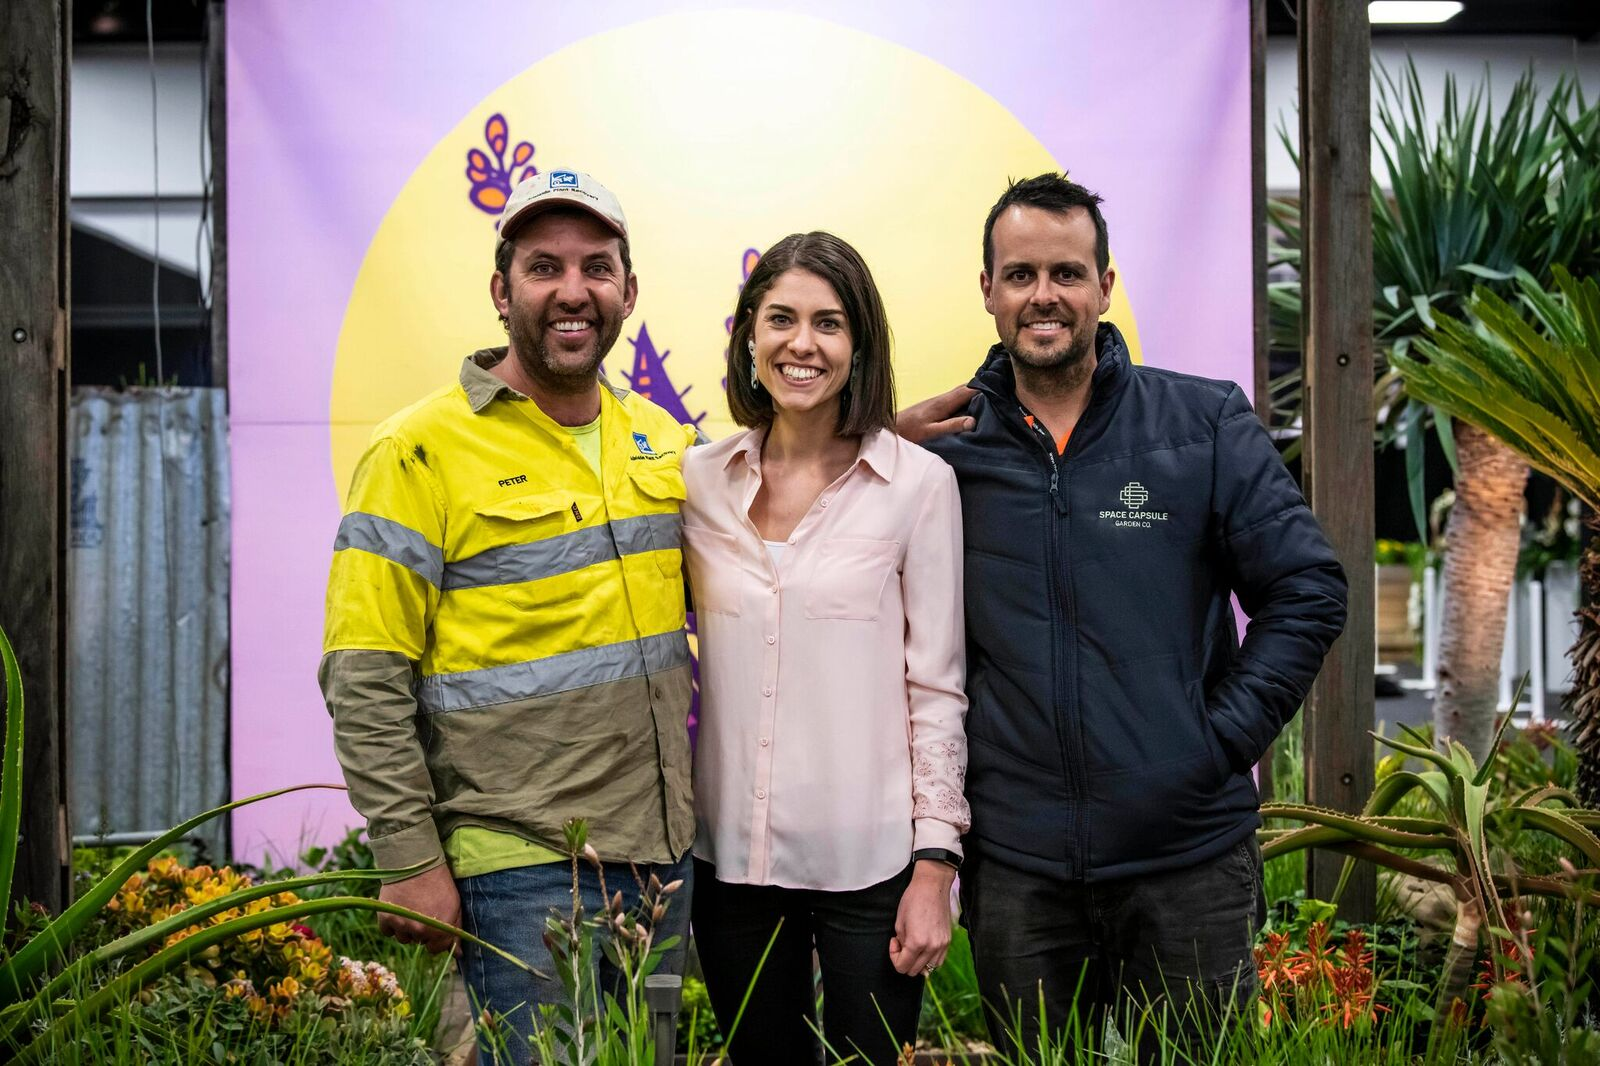 Pete, Leah and Tim at the Royal Adelaide Show. Photo by   bianca de marchi  photography   .